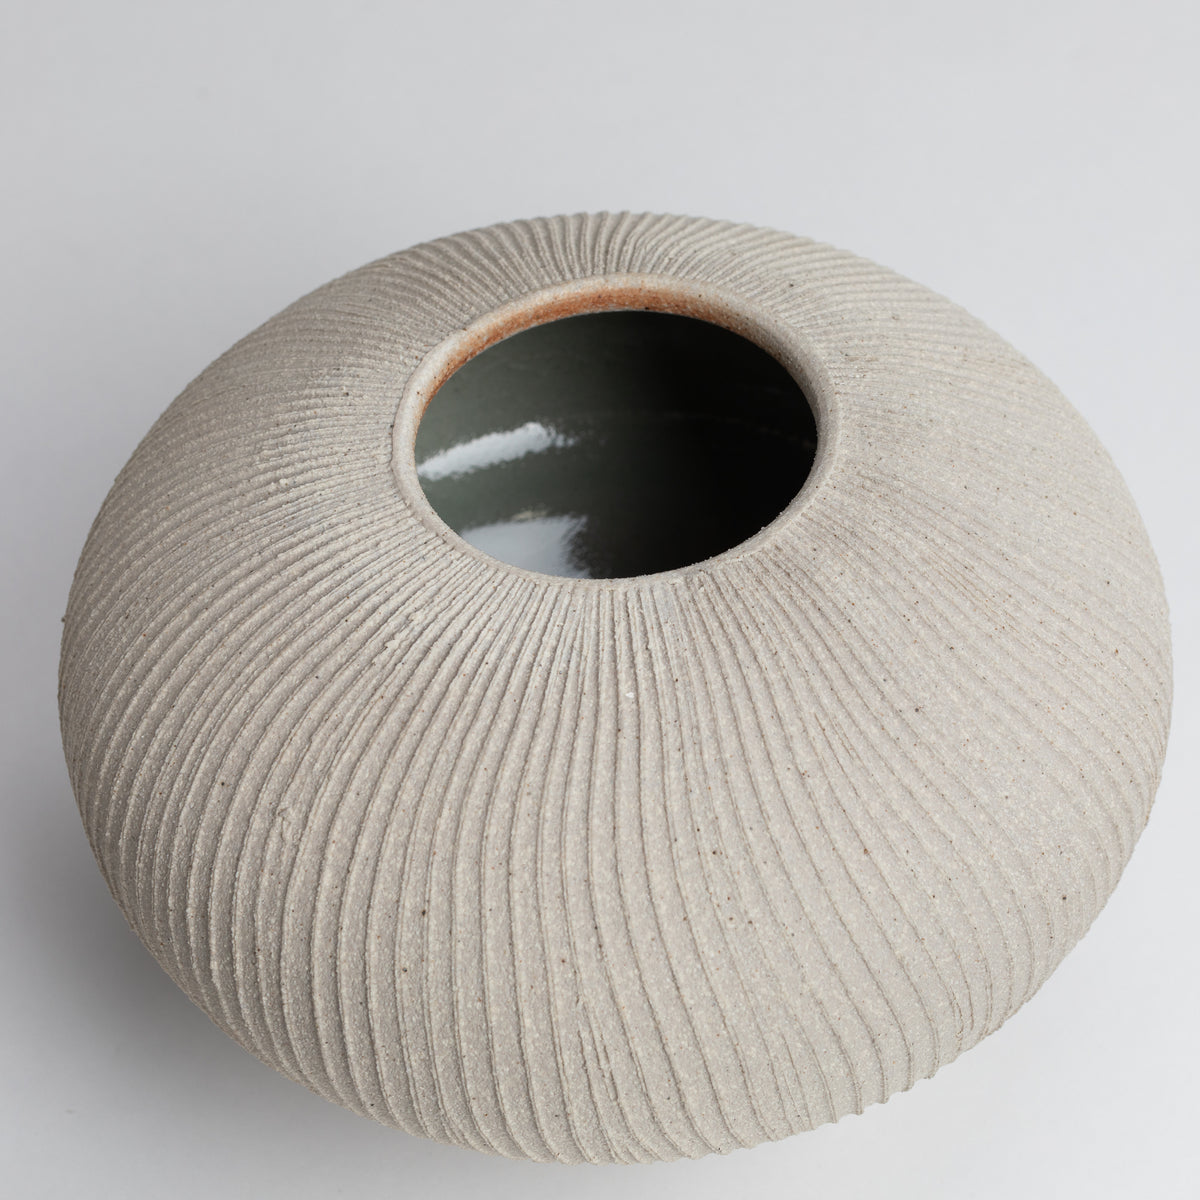 Load image into Gallery viewer, Fluted Vessel 01 Stone Medium